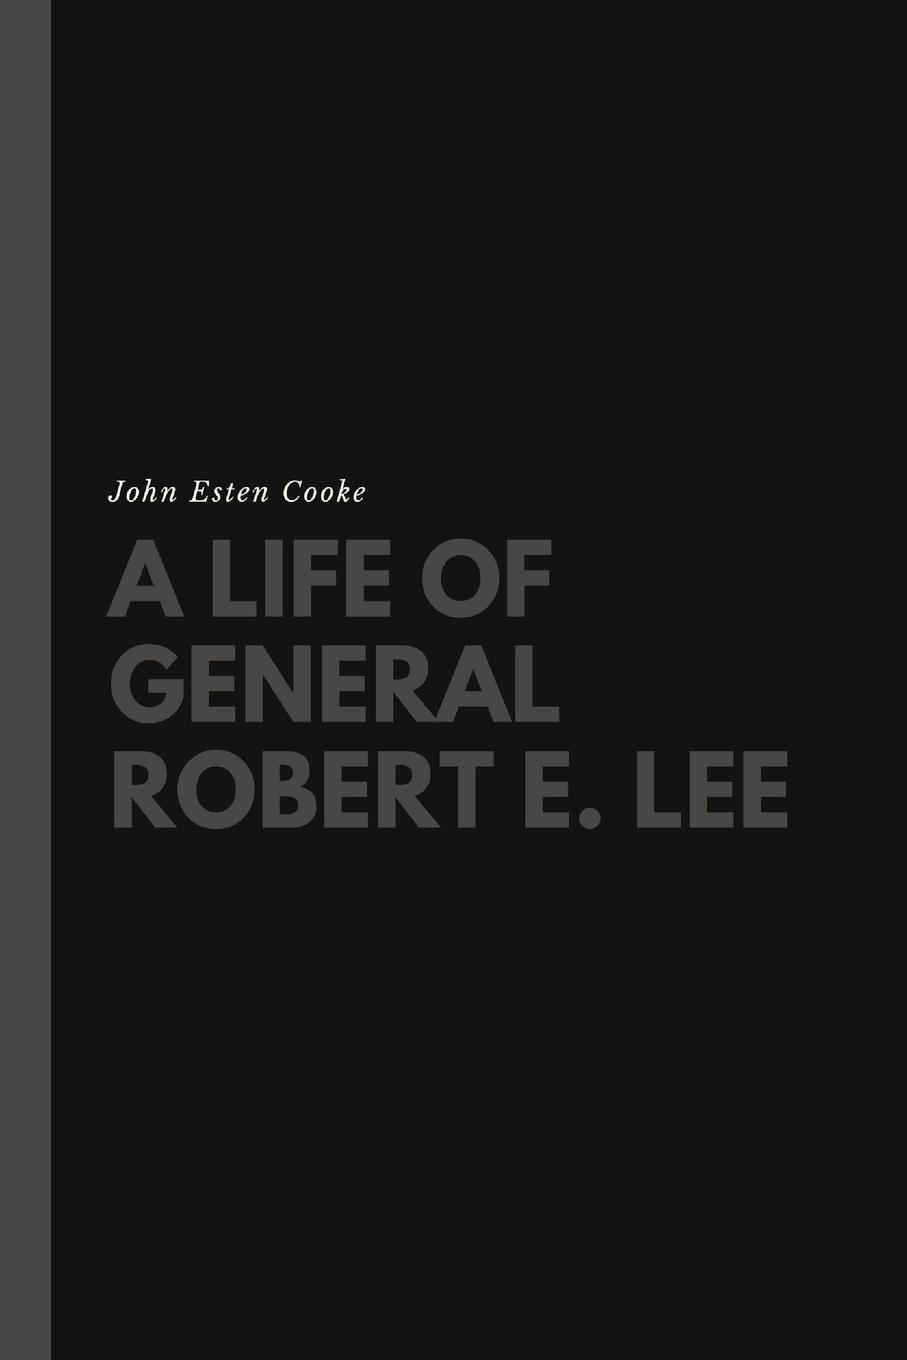 John Esten Cooke A Life of General Robert E. Lee robert eberwein the hollywood war film